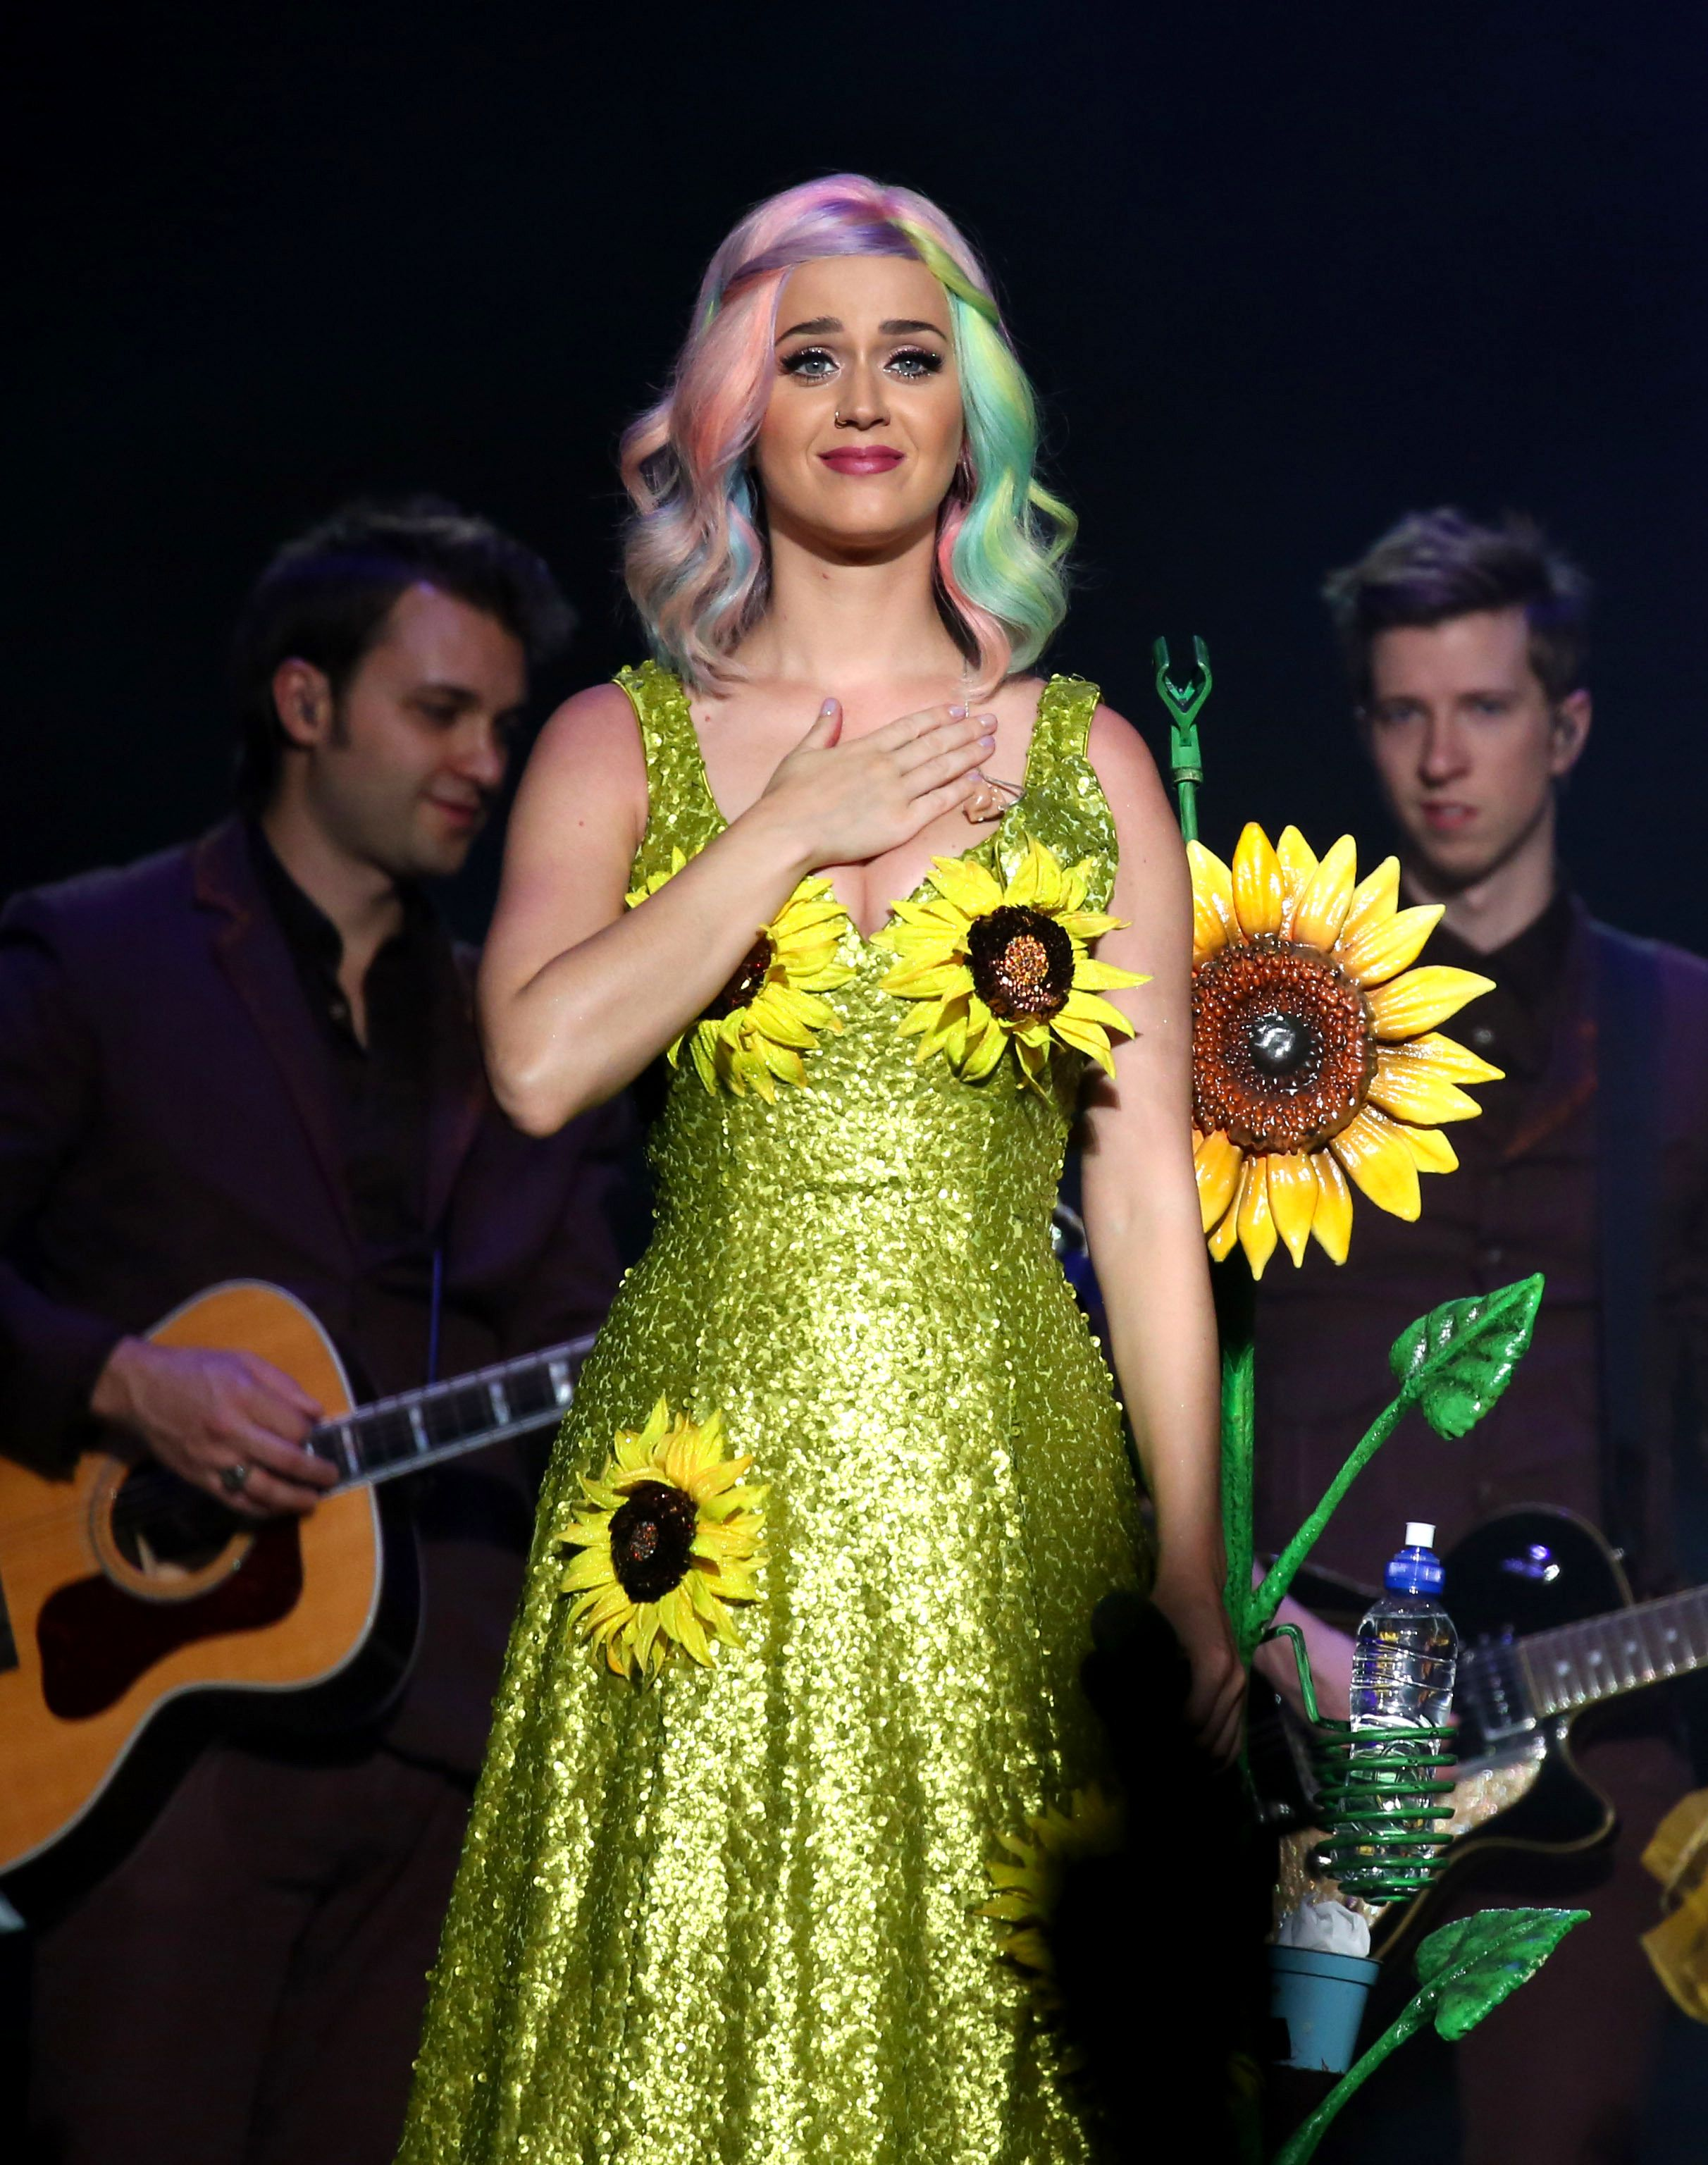 katy perry sunflower dress